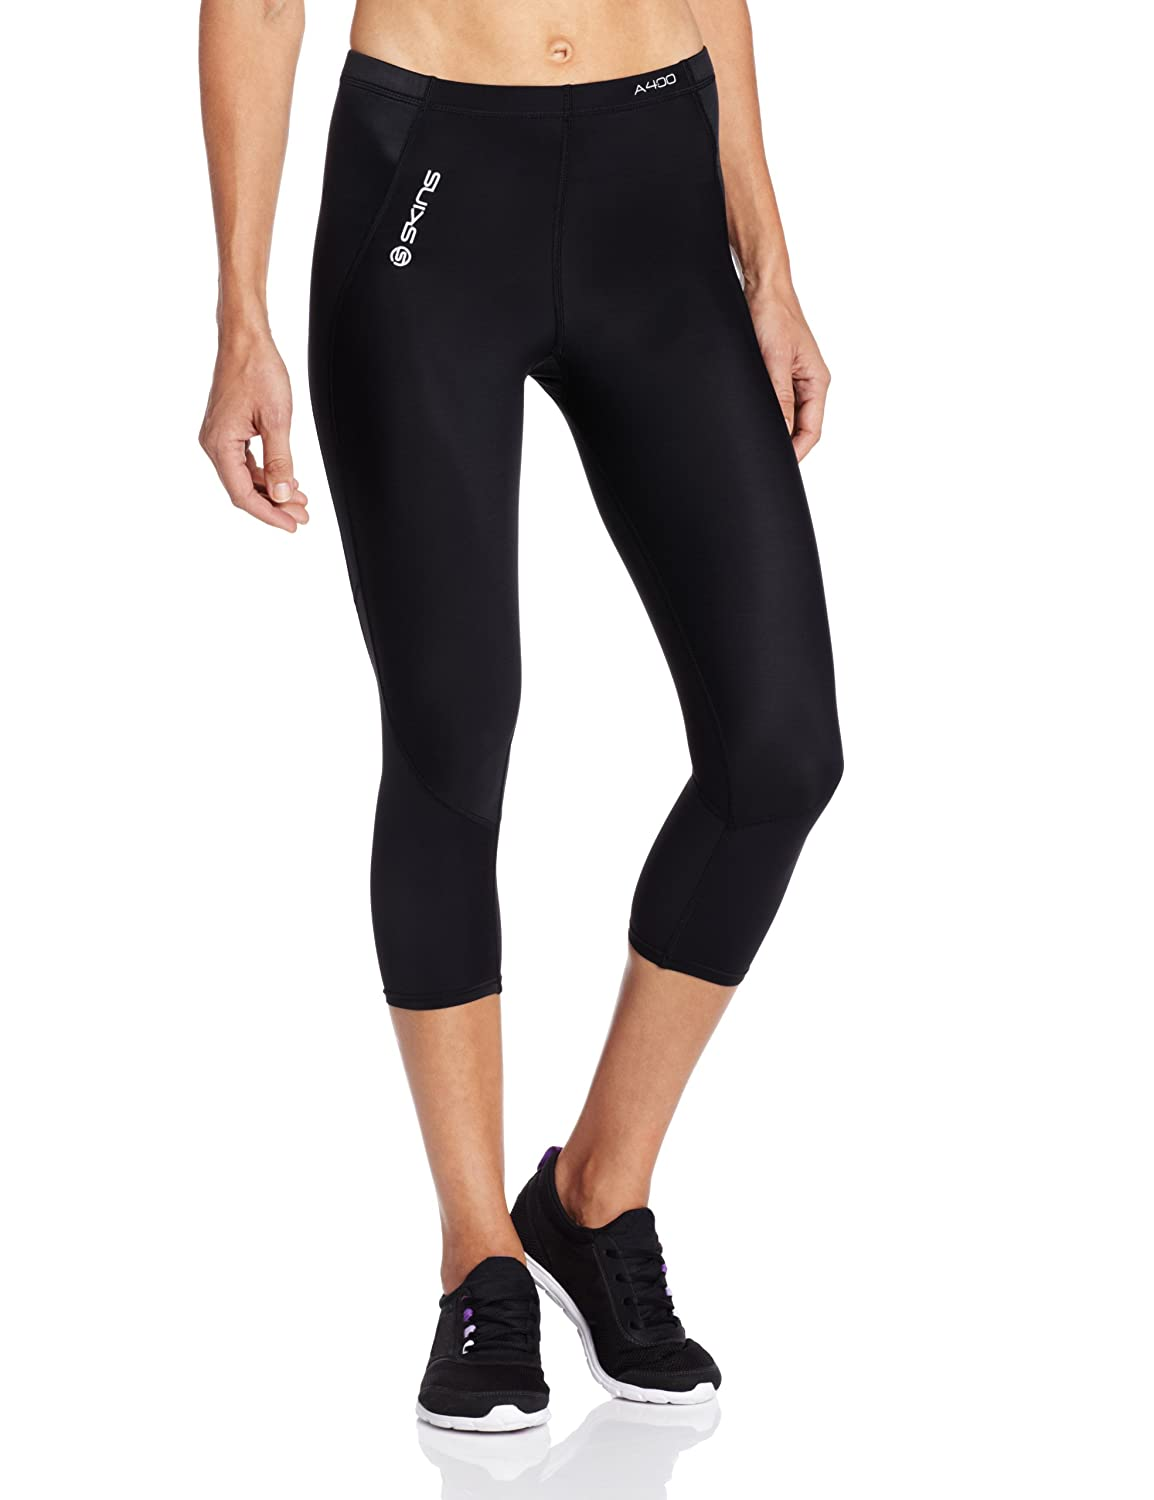 SKINS Women's A400 3/4 Tights SKIOZ